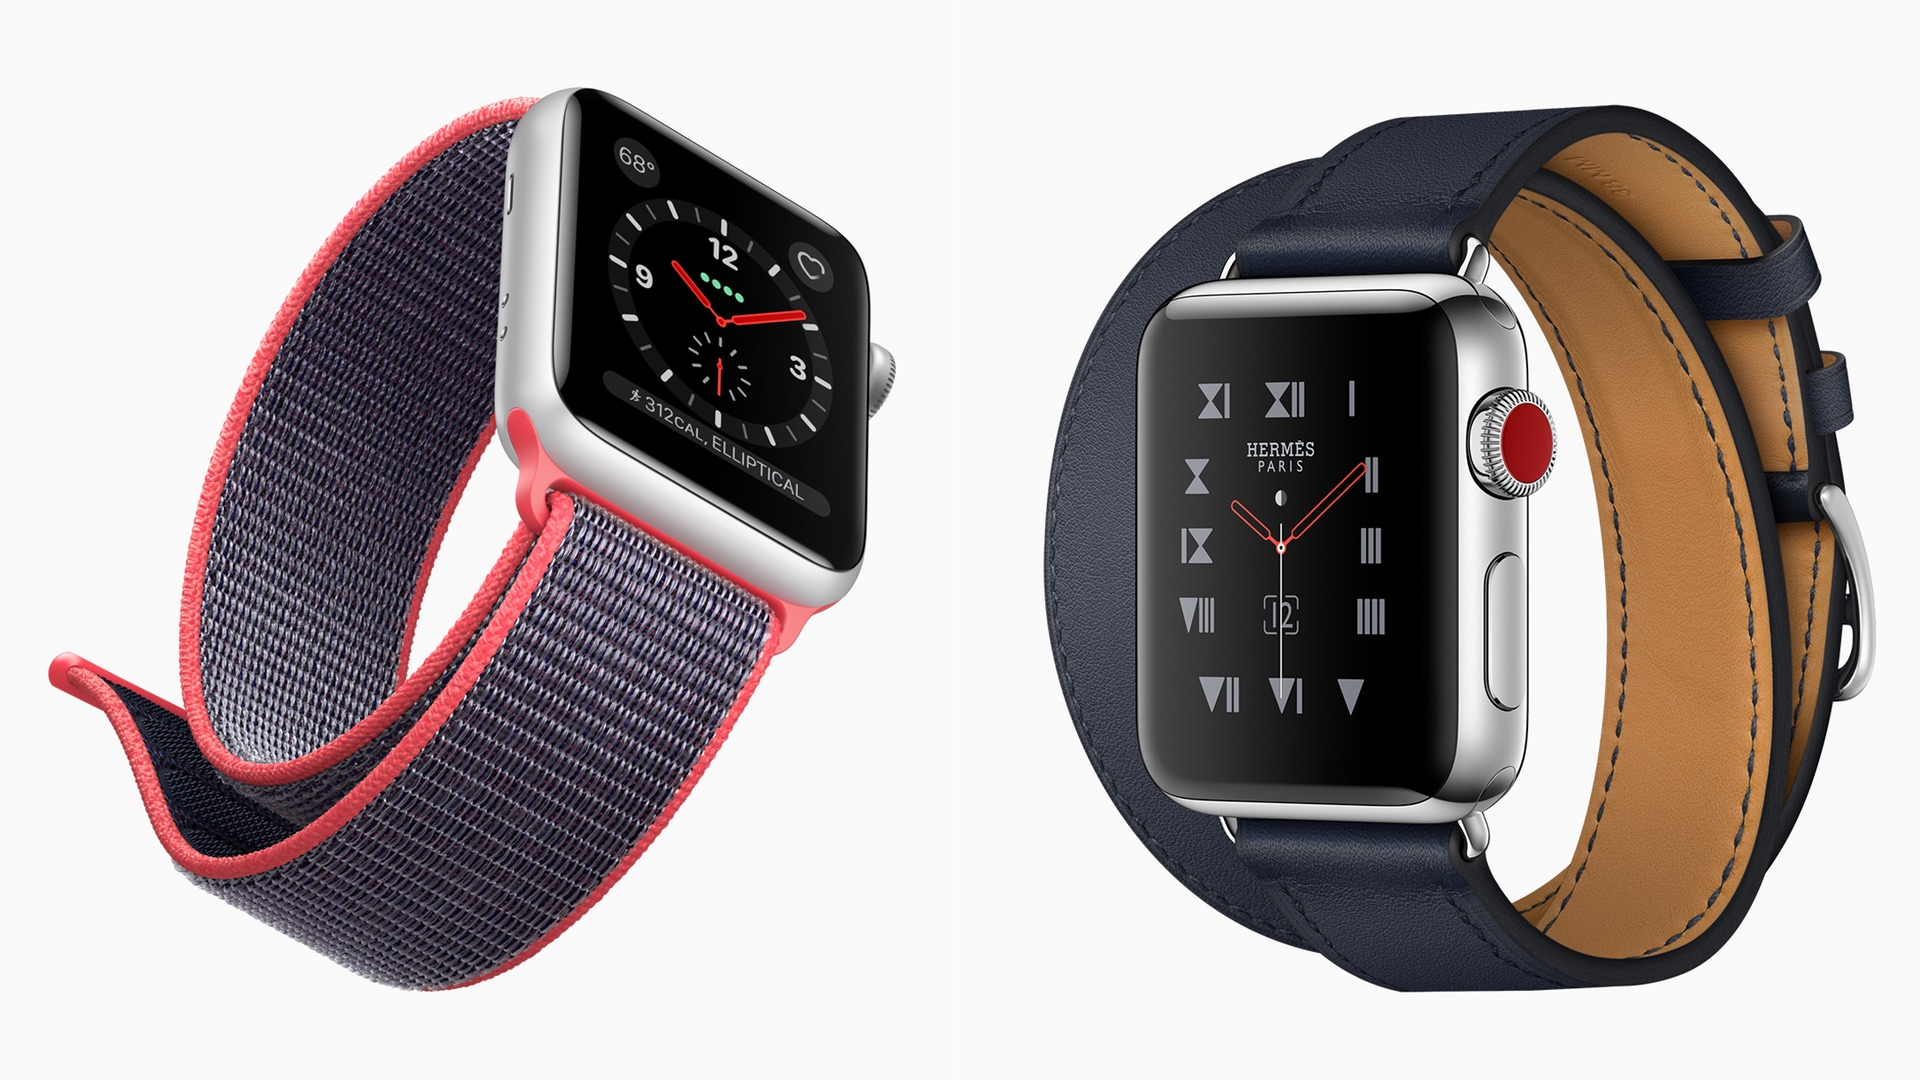 Import - Apple Watch 3 funktioniert in AT oder DE nicht